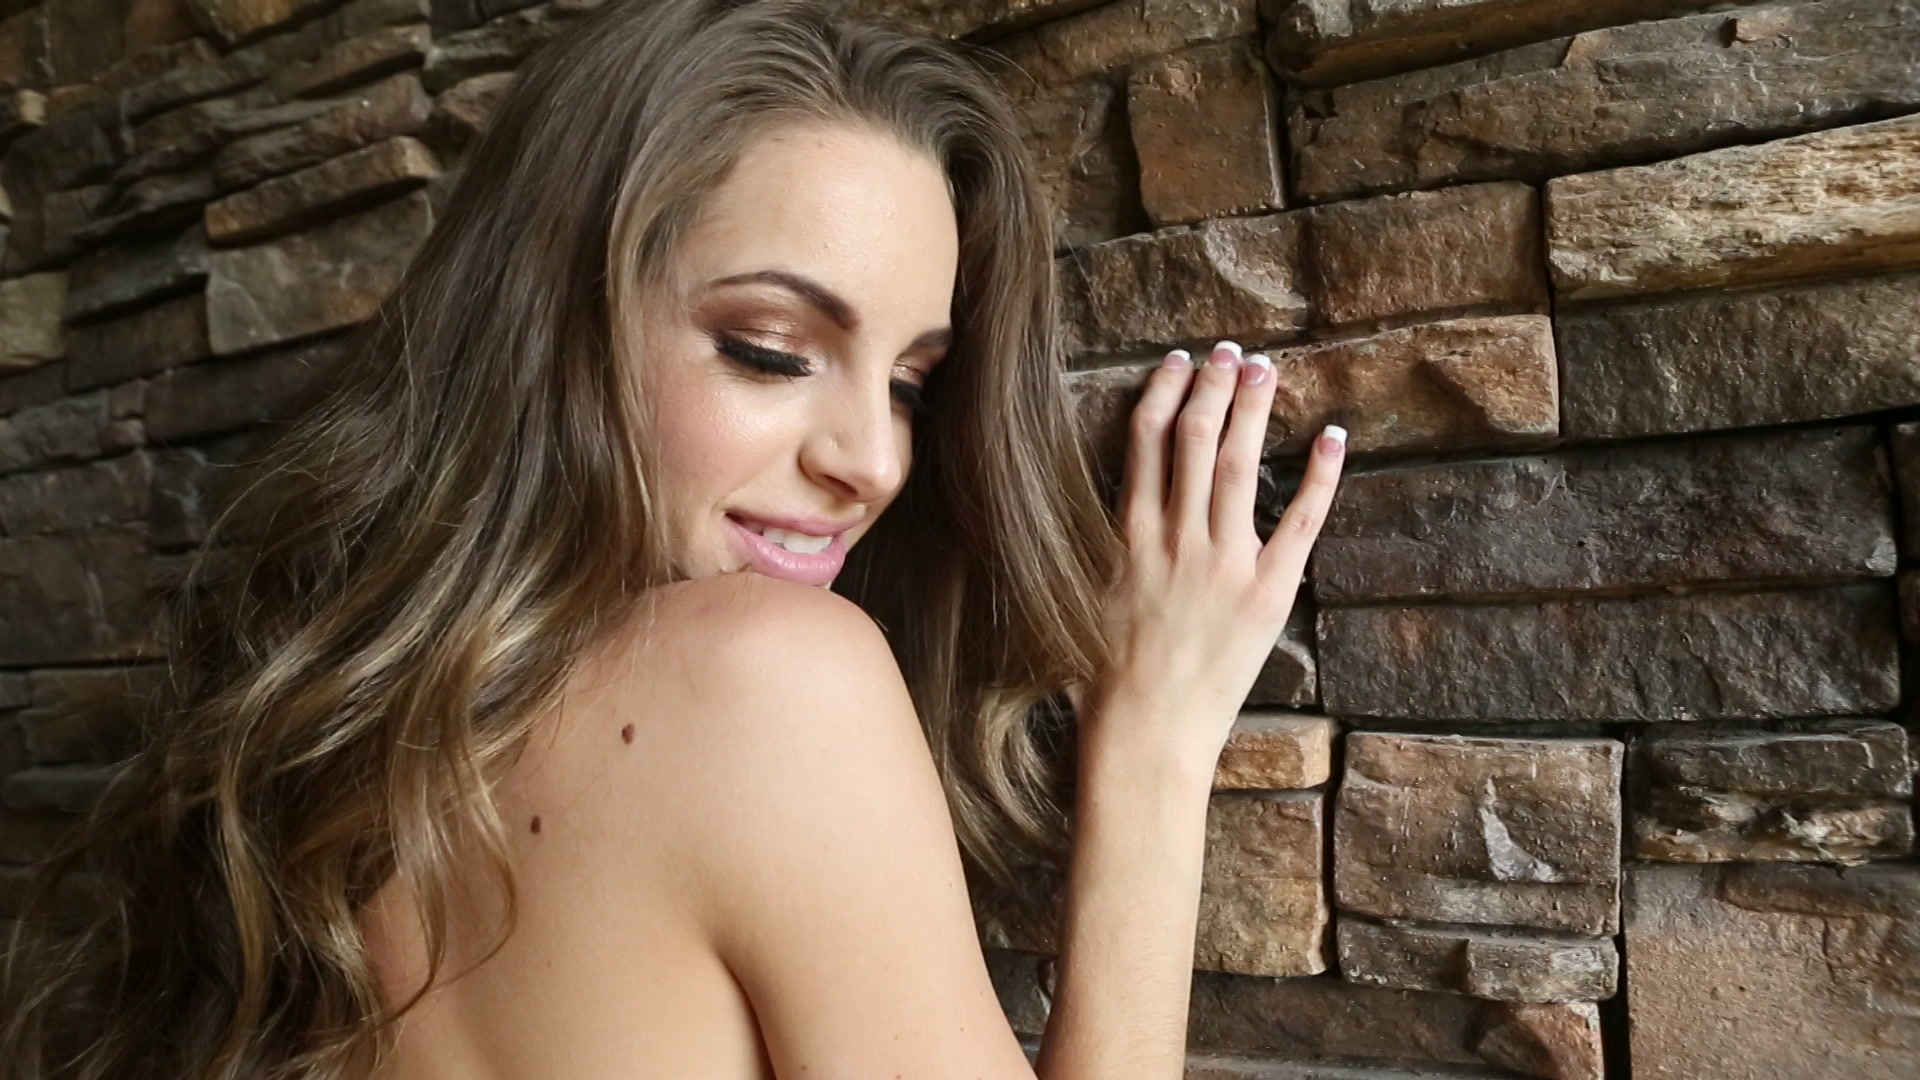 Scene with Kimmy Granger - image 10 out of 20